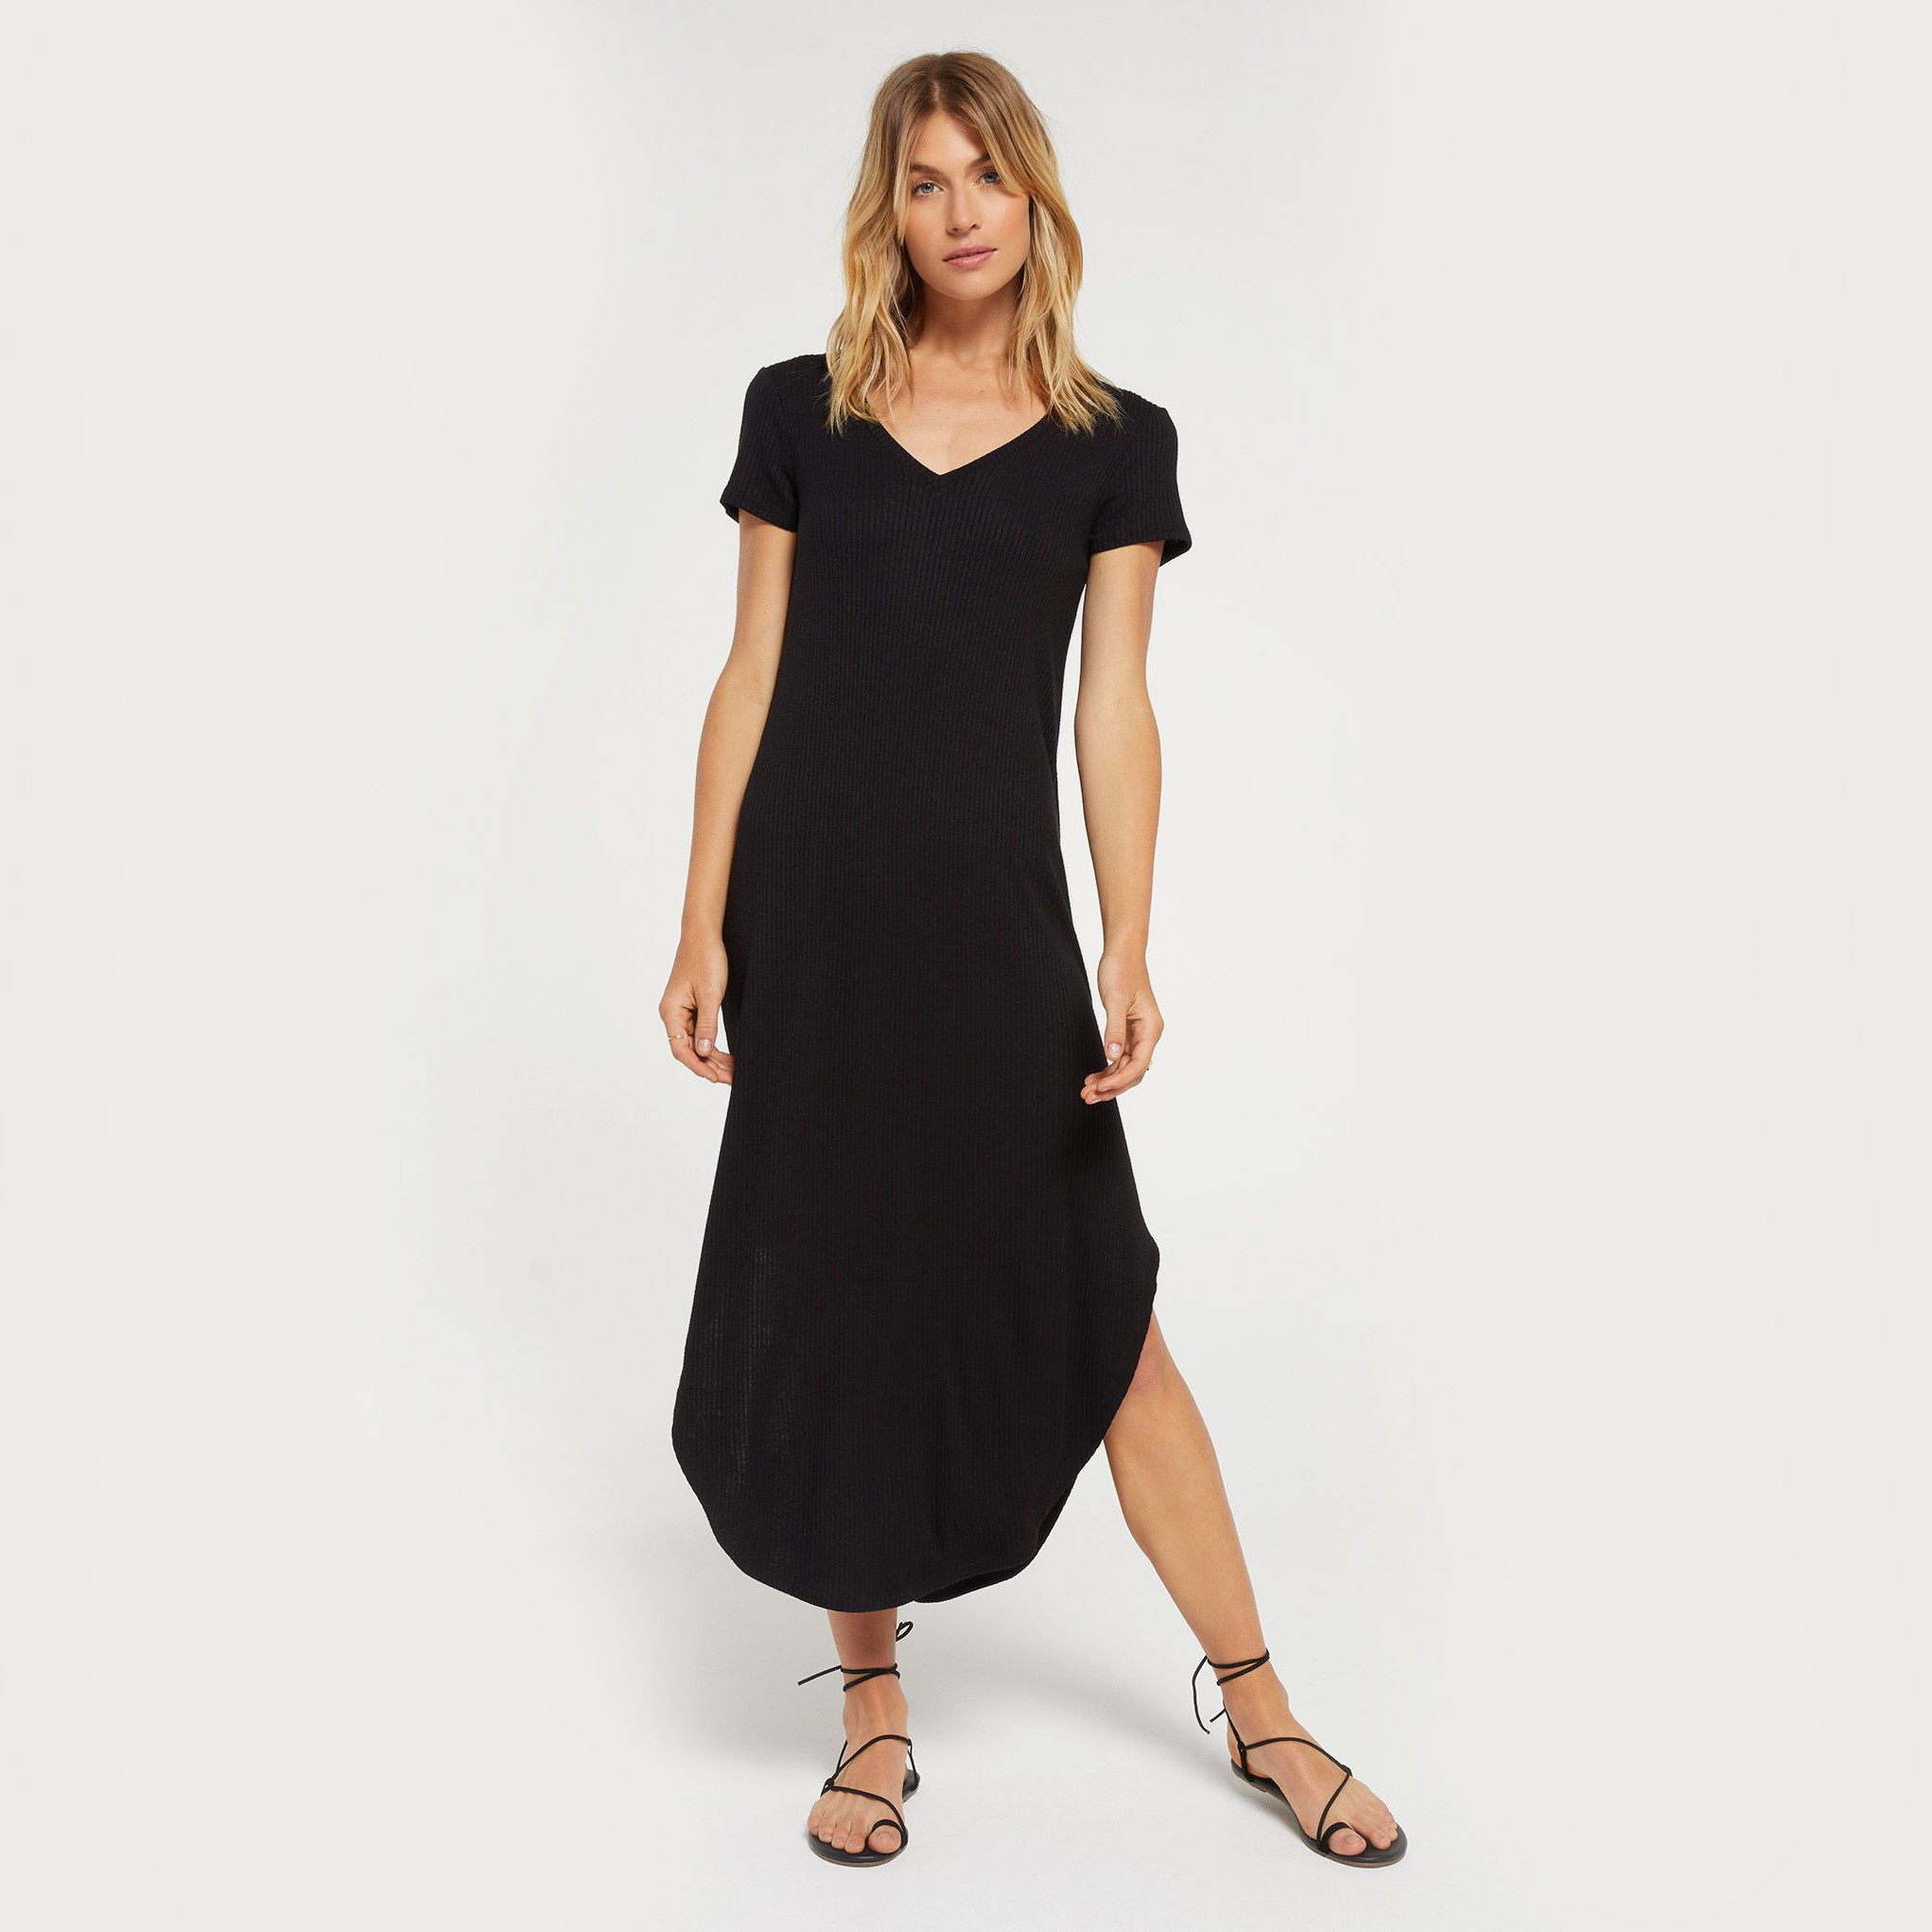 Woman in a popular midi dress. Casual summer dress by Z-Supply